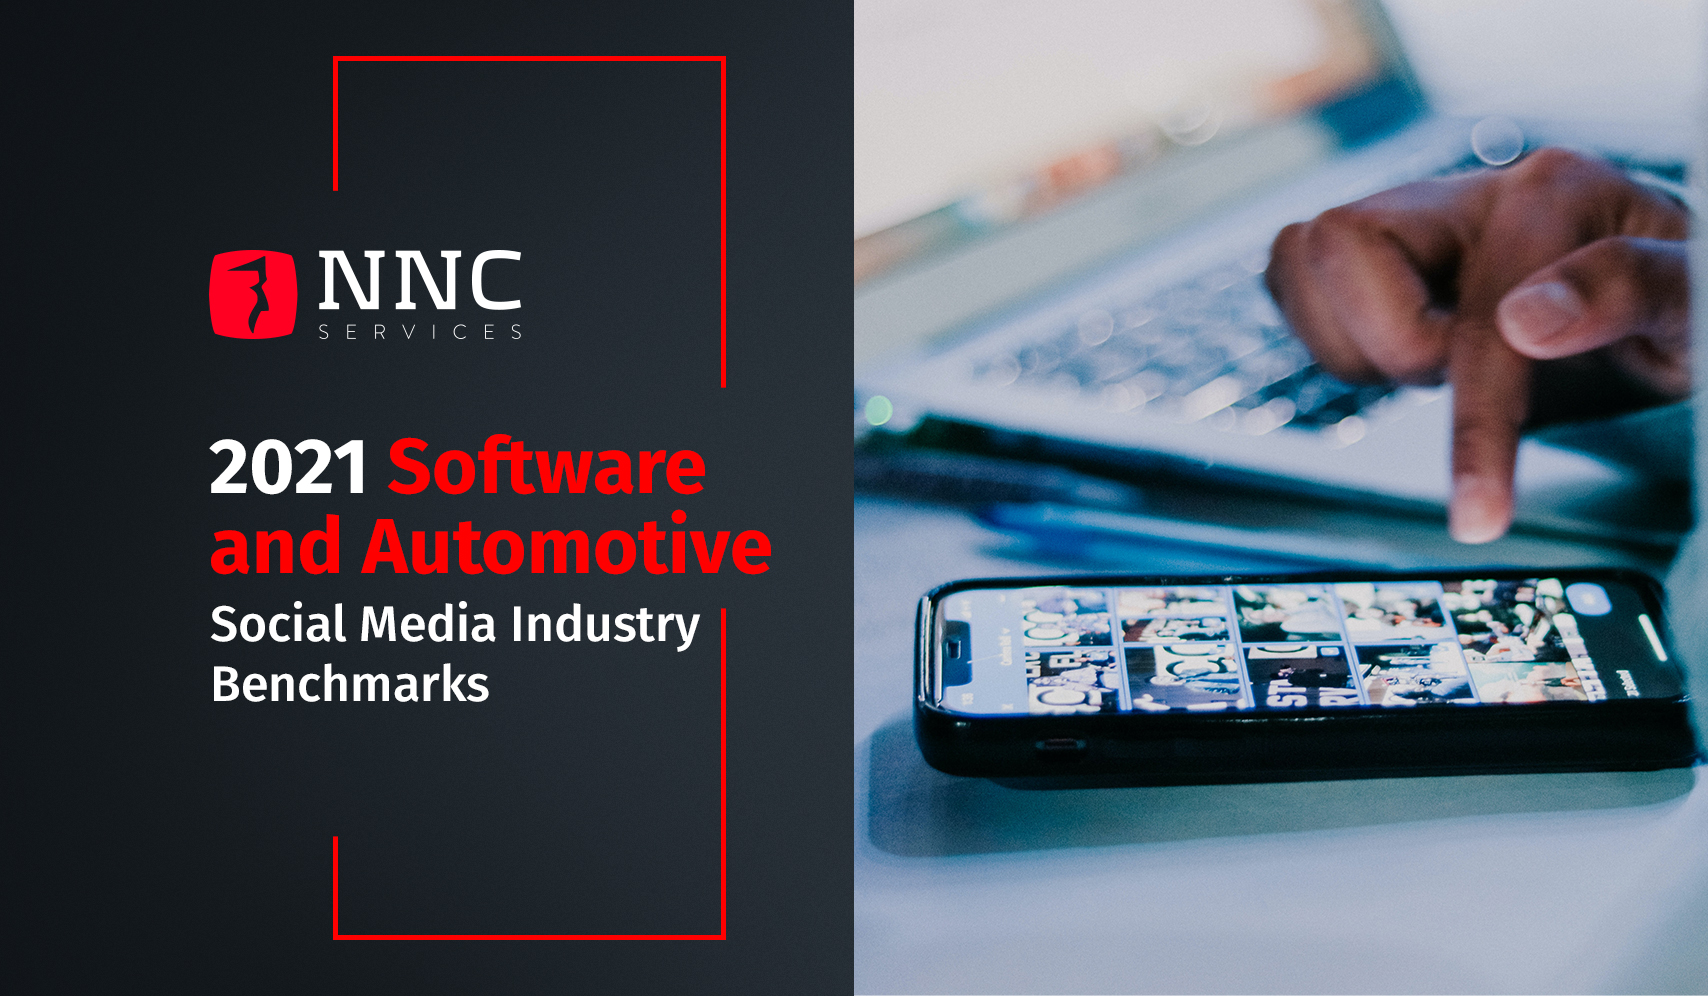 2021 software and automotive social media industry benchmarks